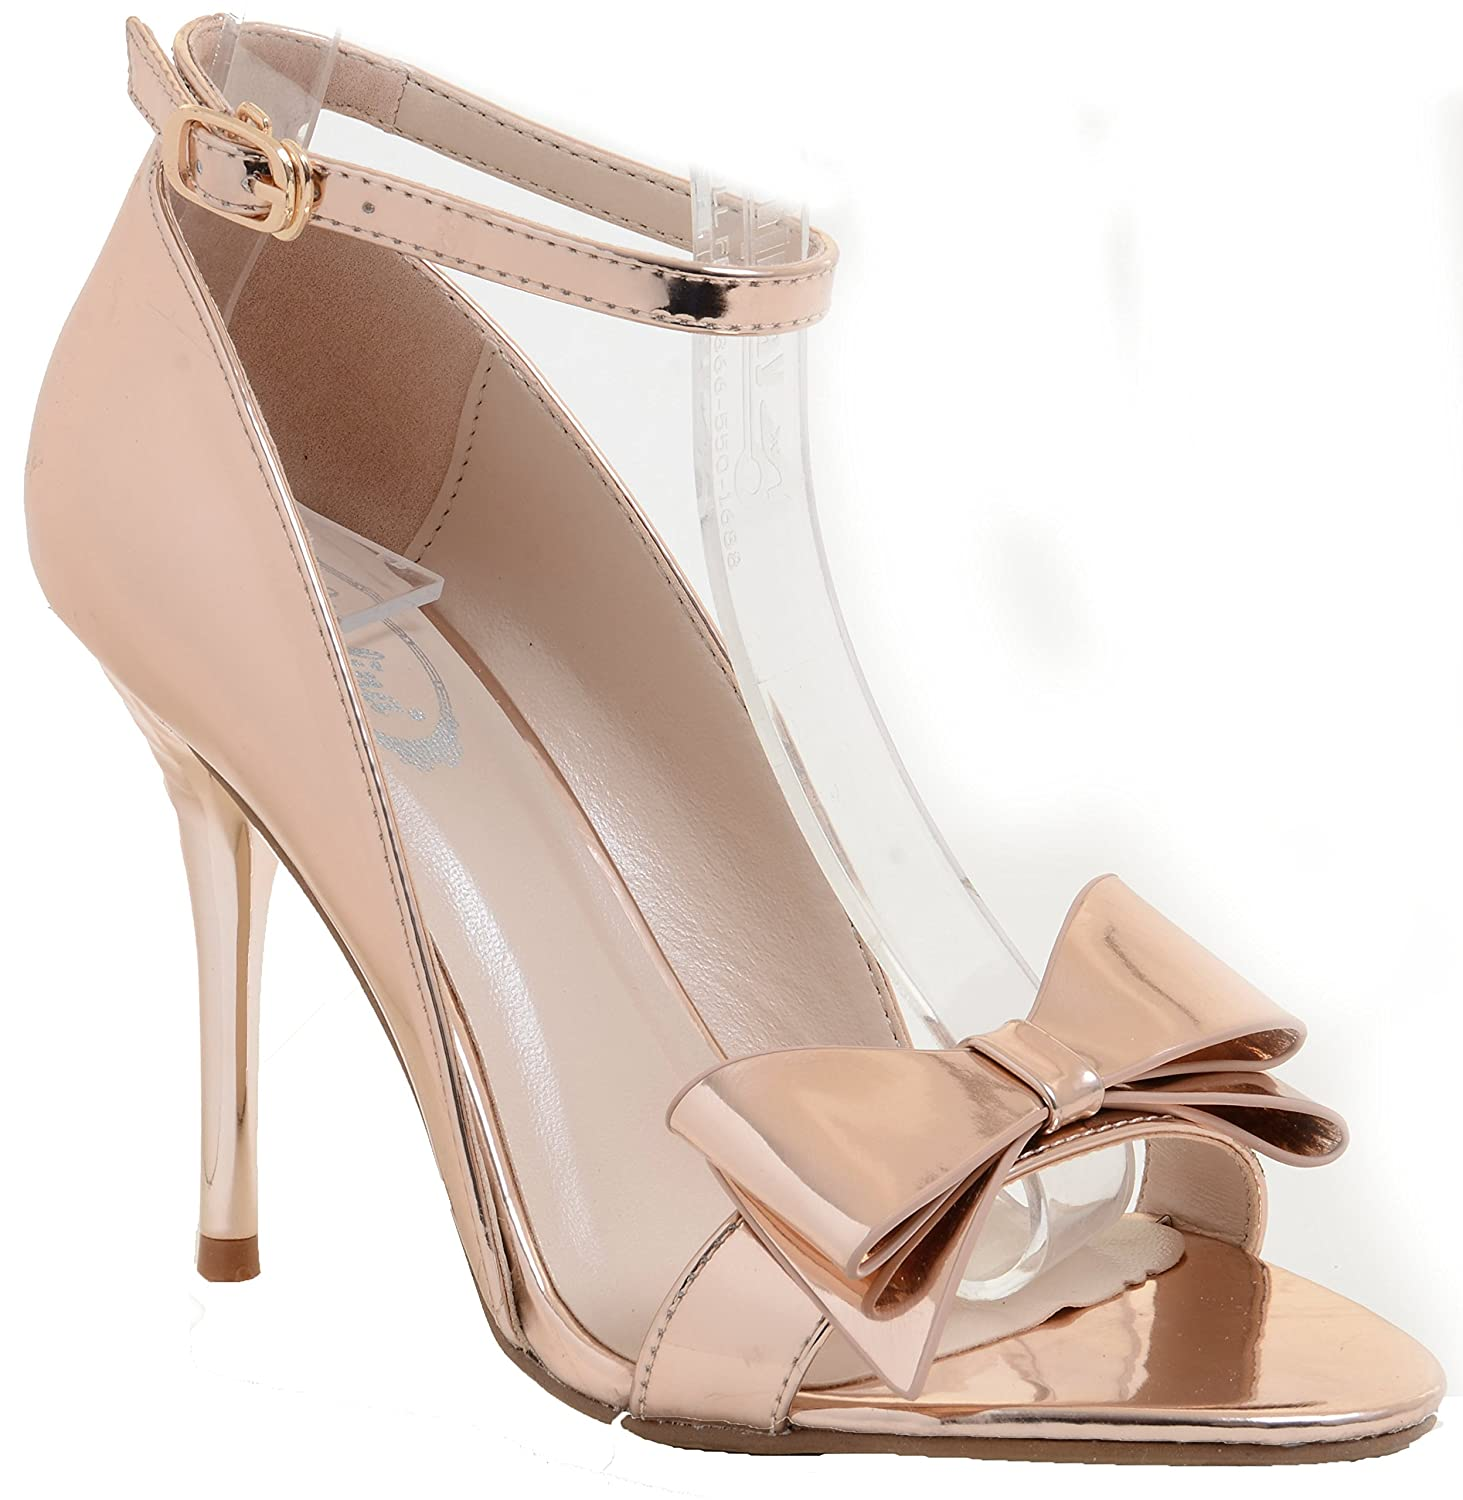 d3b9a7f5dc57 Amazon.com  Champagne Rose Gold Metallic Ankle Strap Bow High Heel Wedding  Shoes Women s  Clothing